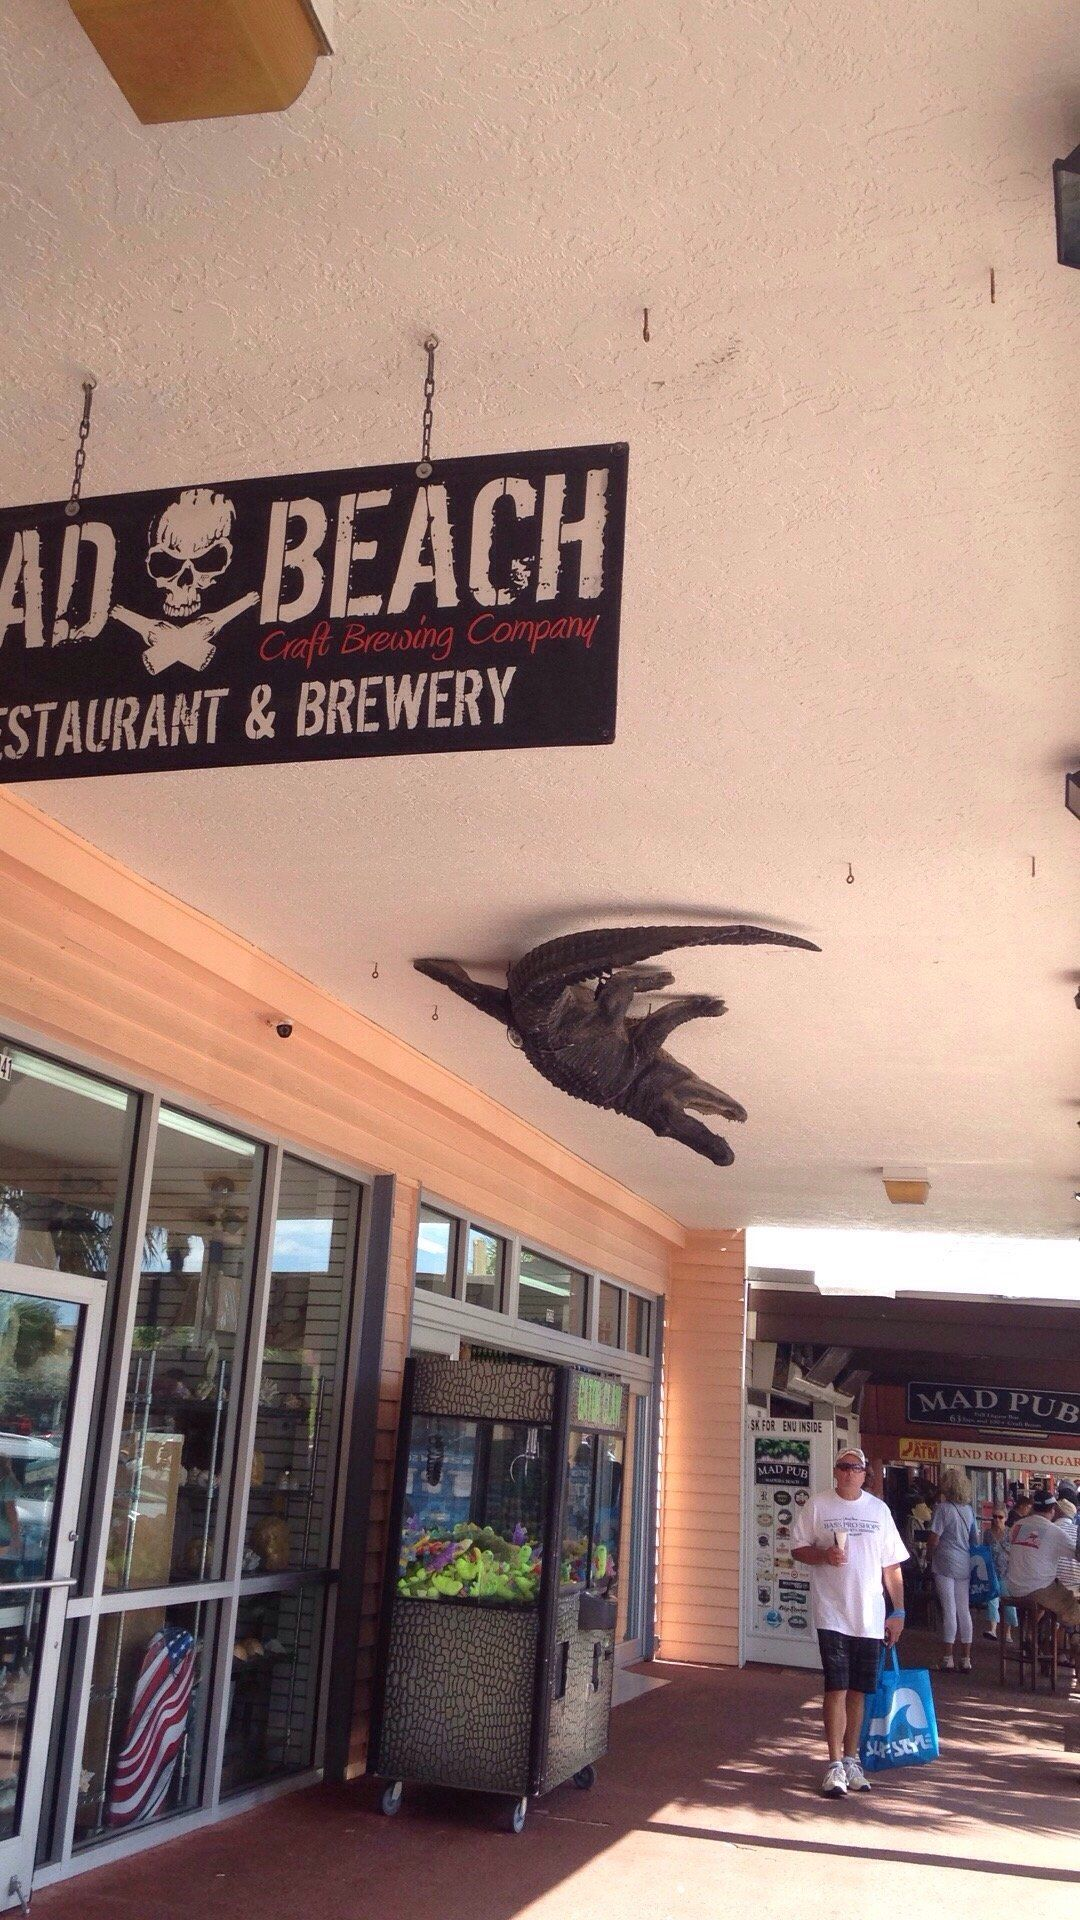 Mad Beach Craft Brewing Co Madeira Ranked 2 Of 80 Restaurants In